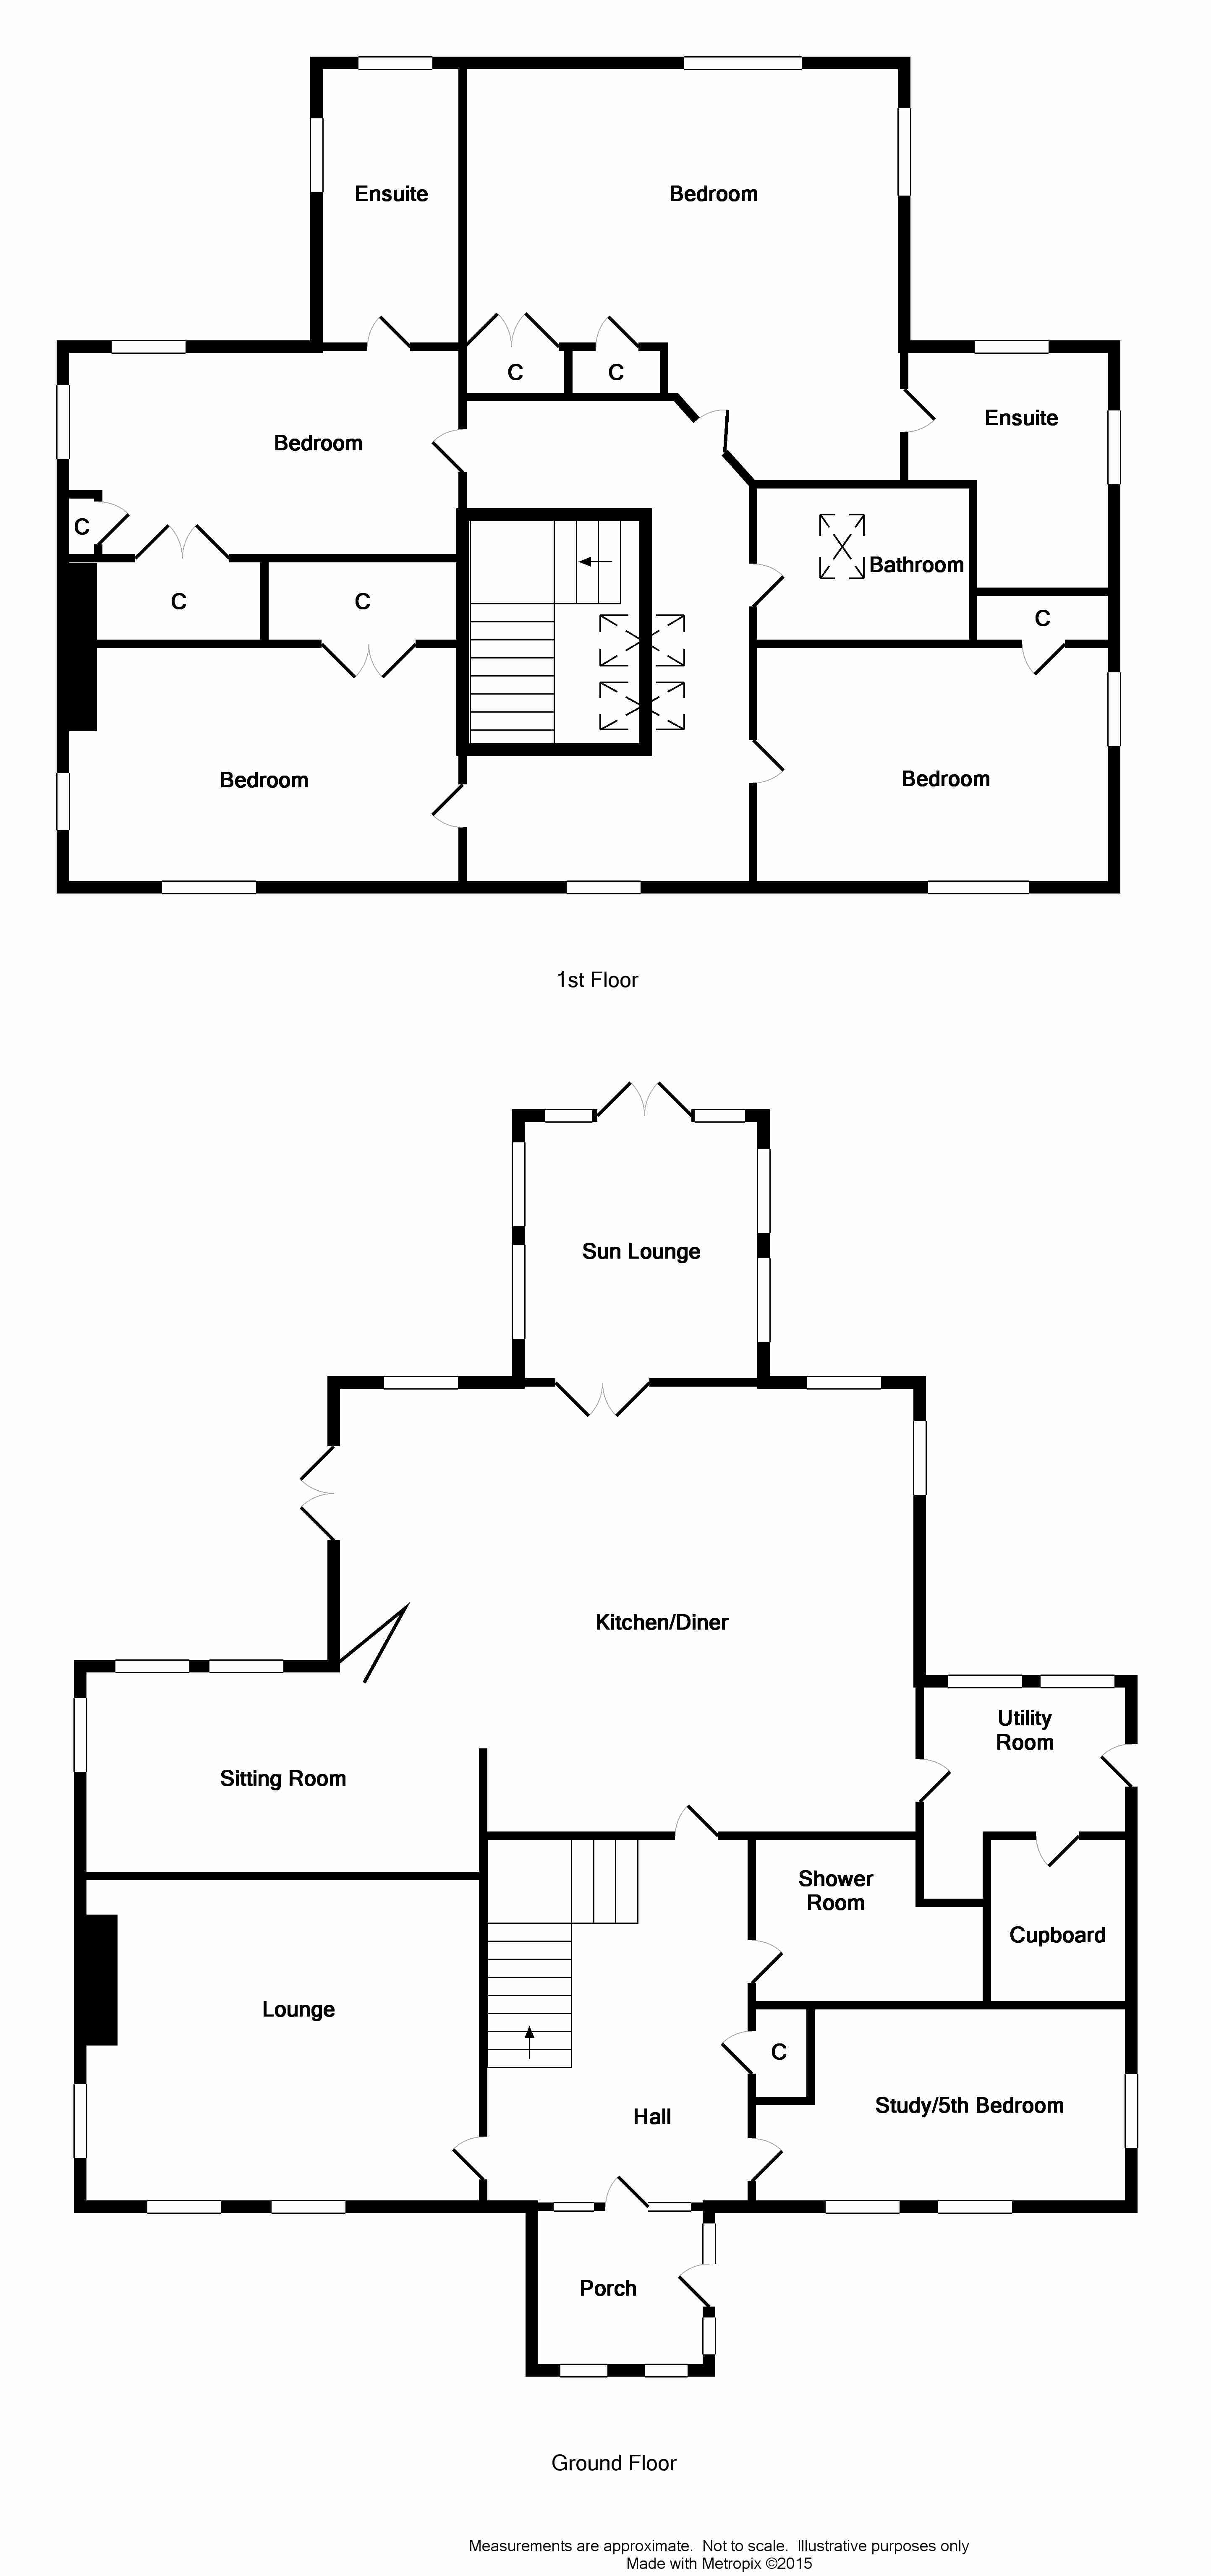 Floor Plan for 'Newolm Cottage'